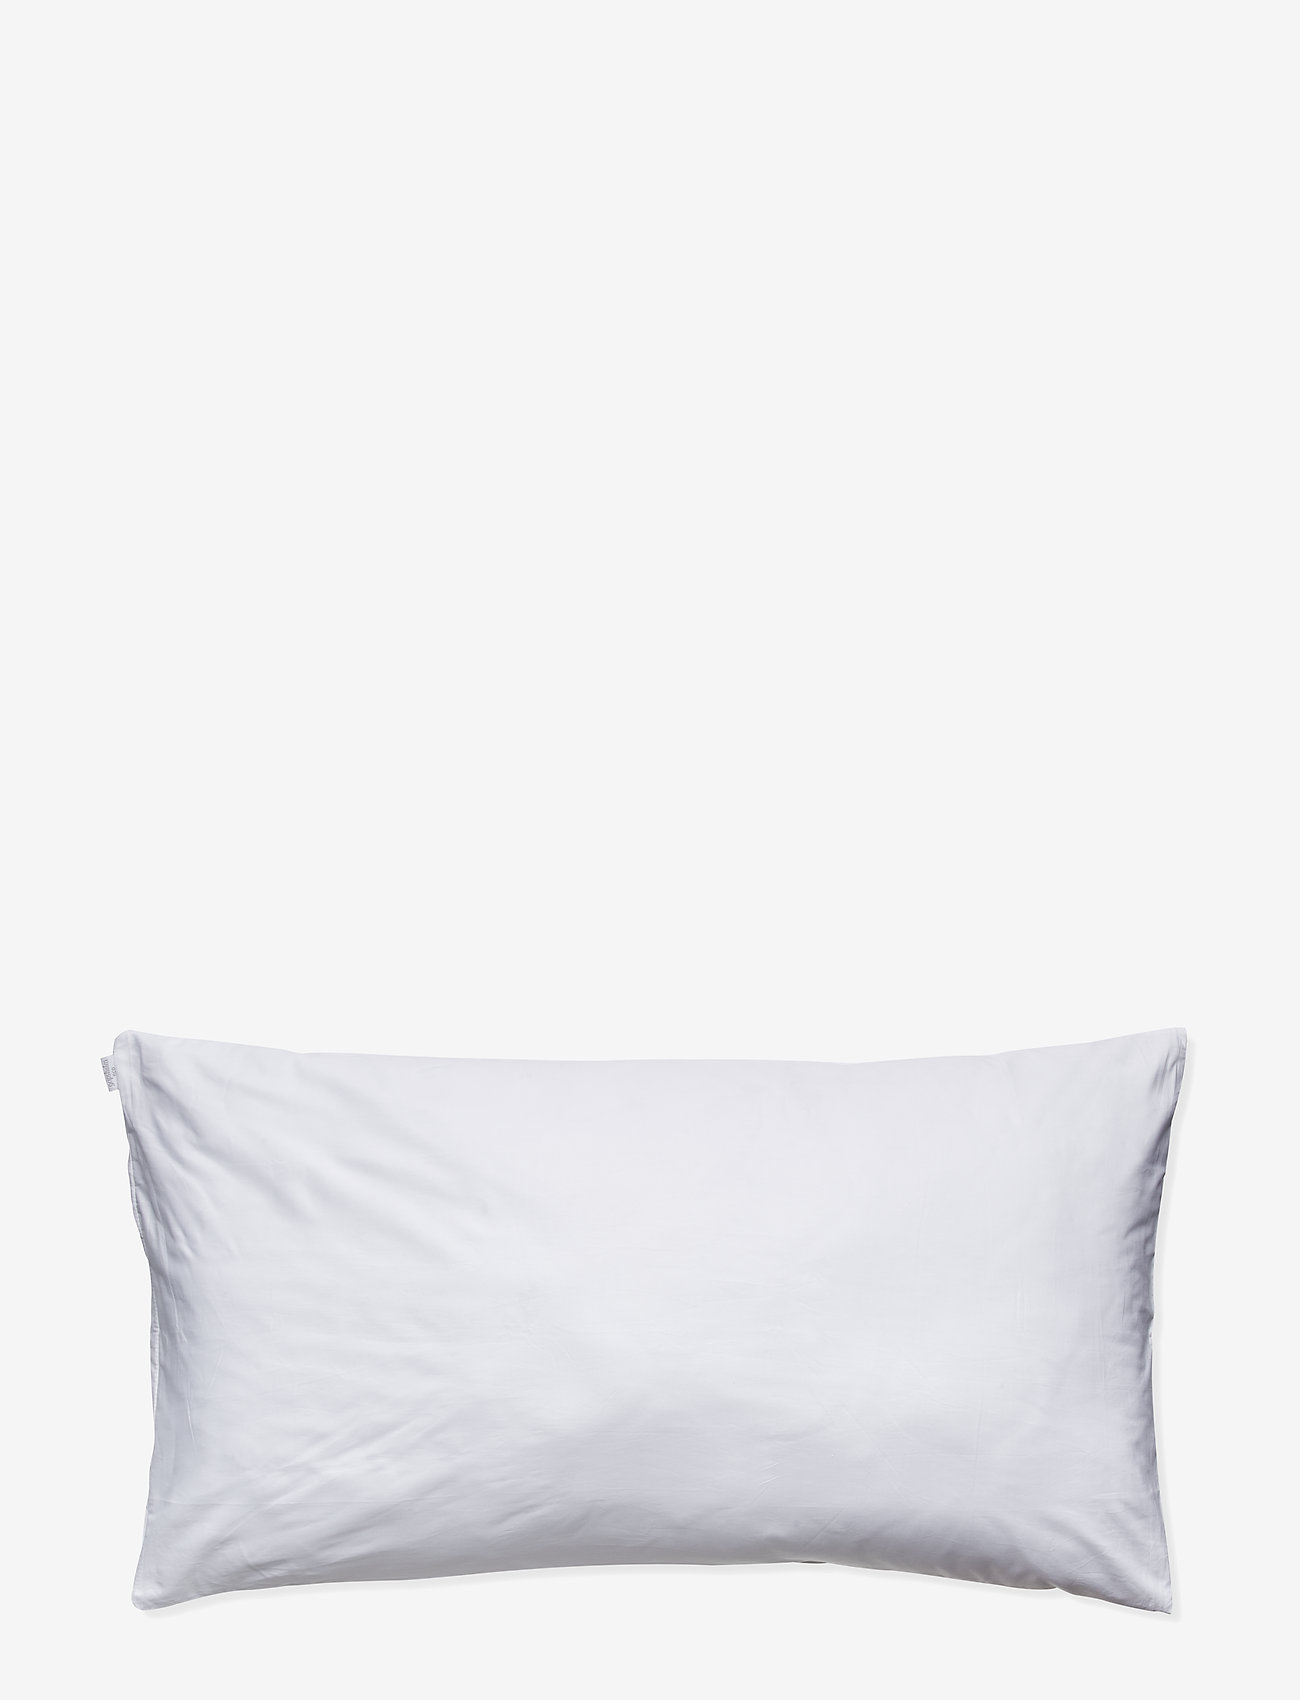 Gripsholm - PILLOWCASE ECO PERCALE - tyynyt & peitot - white